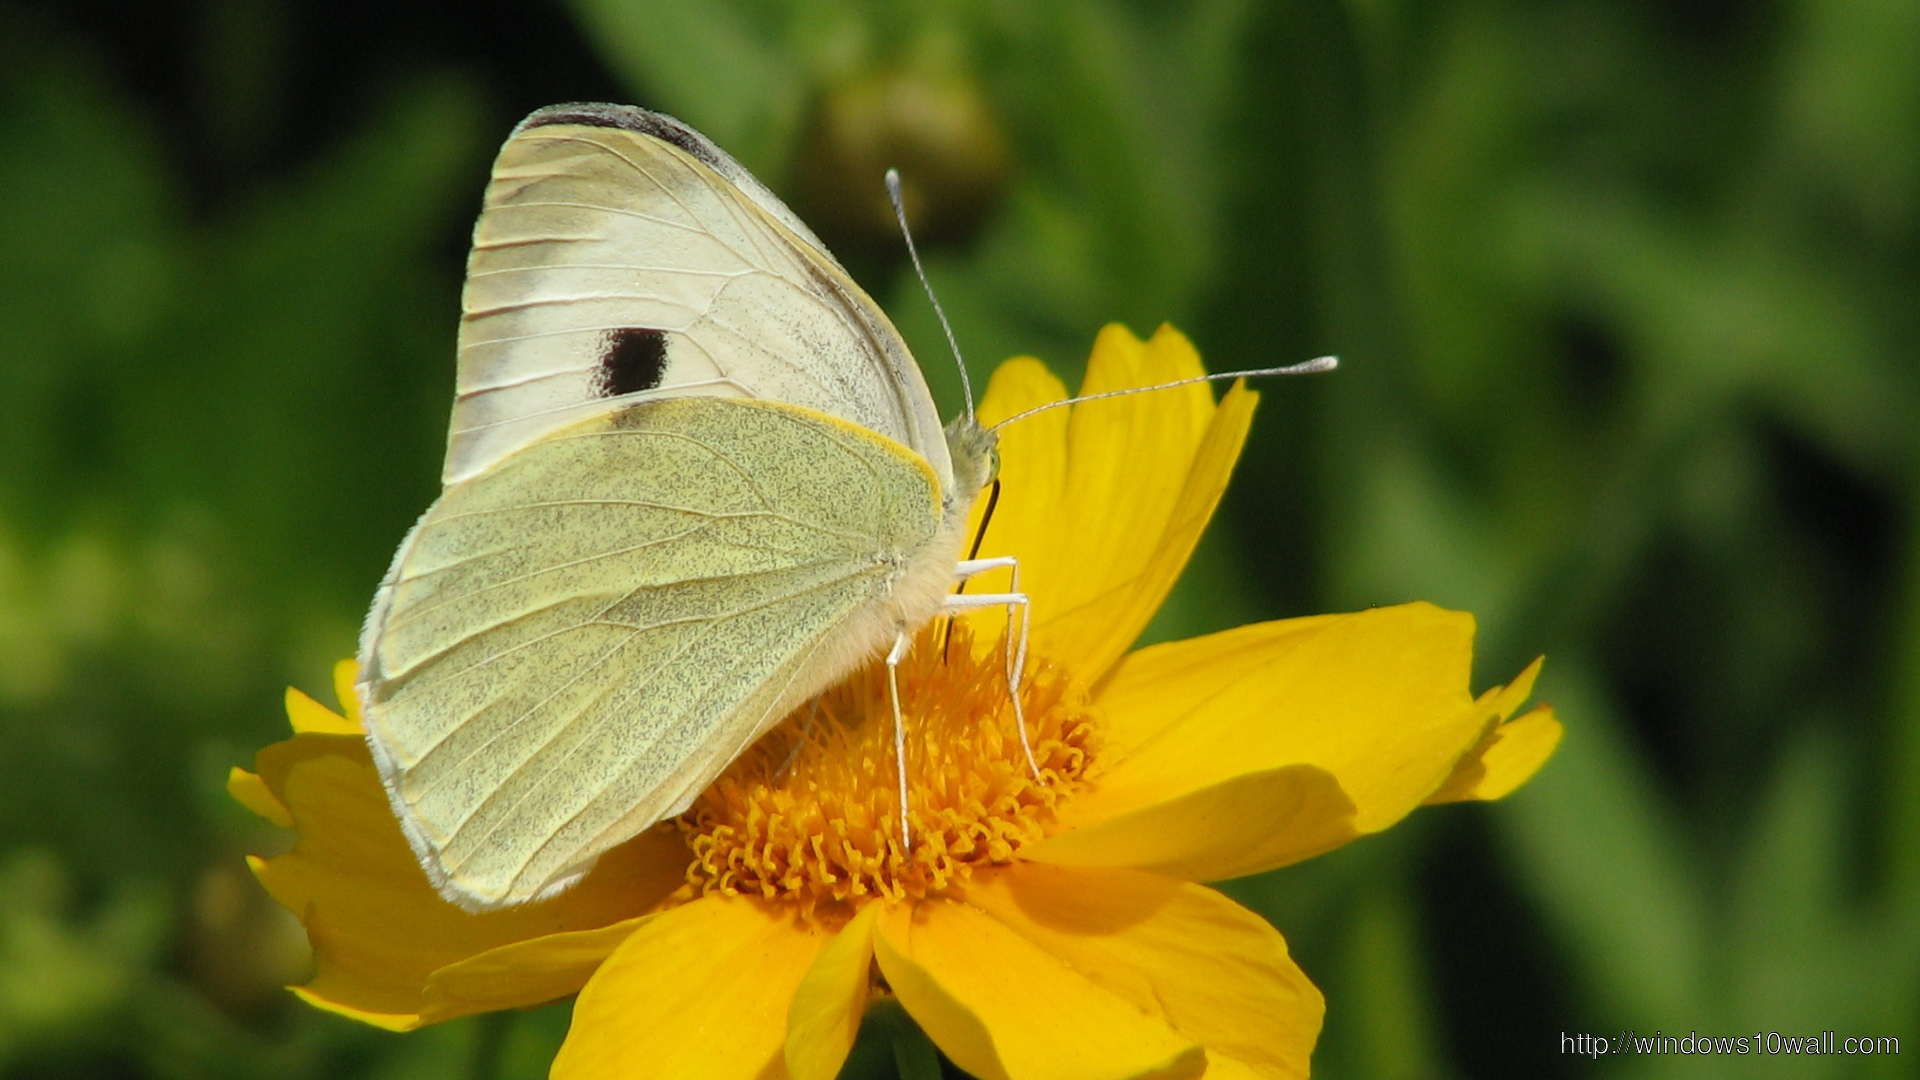 Butterfly page 4 windows 10 wallpapers for Butterfly on flowers